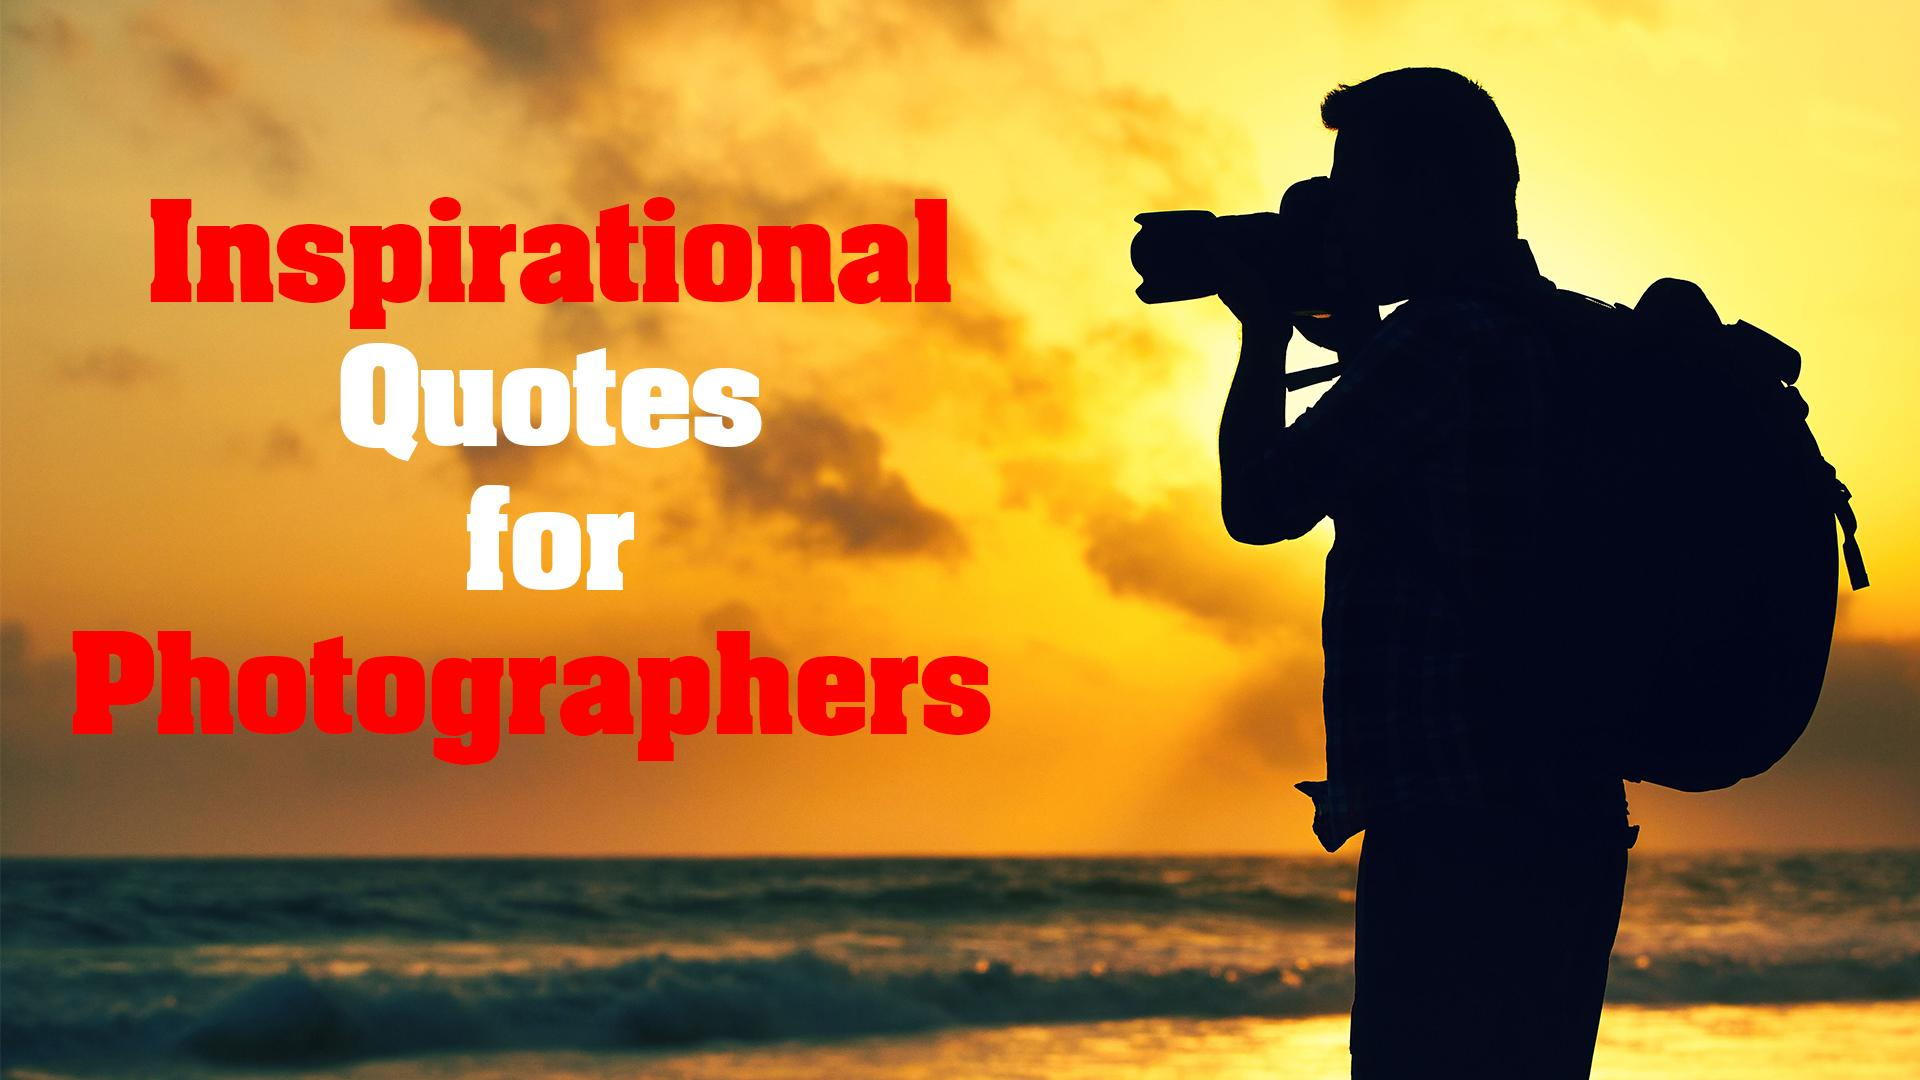 Inspirational Quotes For Photographers Part 1 Quotethee Daily